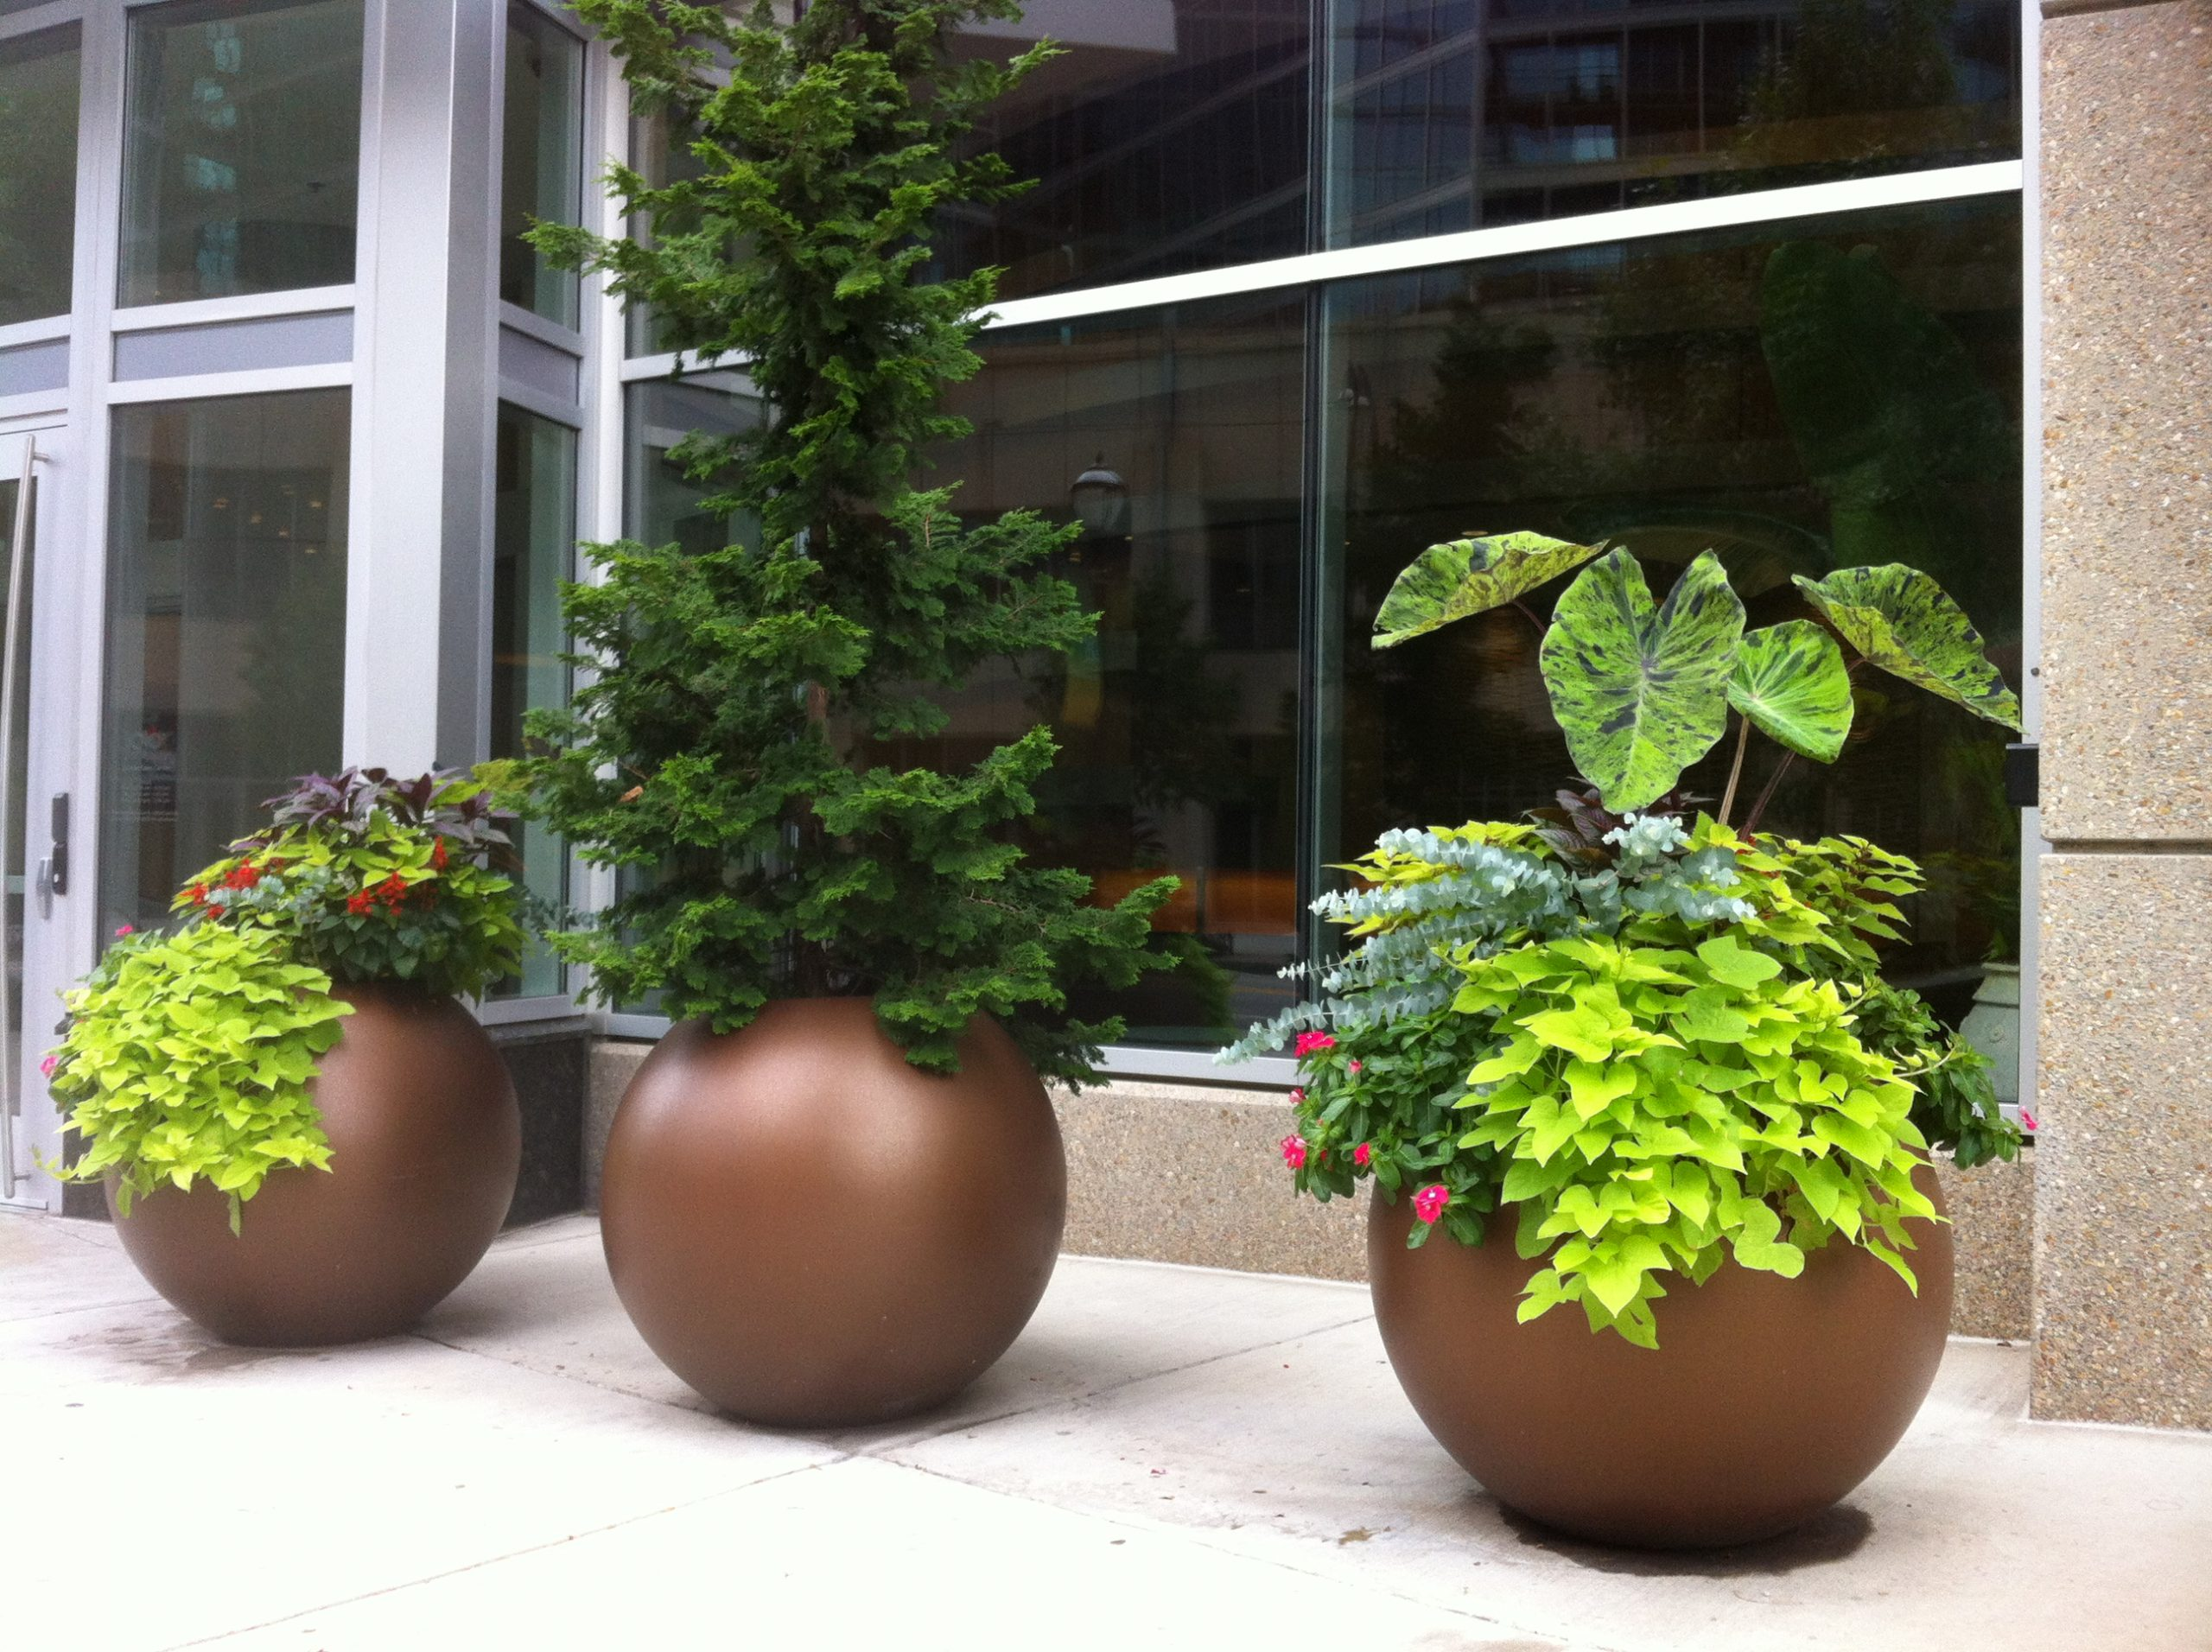 3 golden brown globular planters outdoors